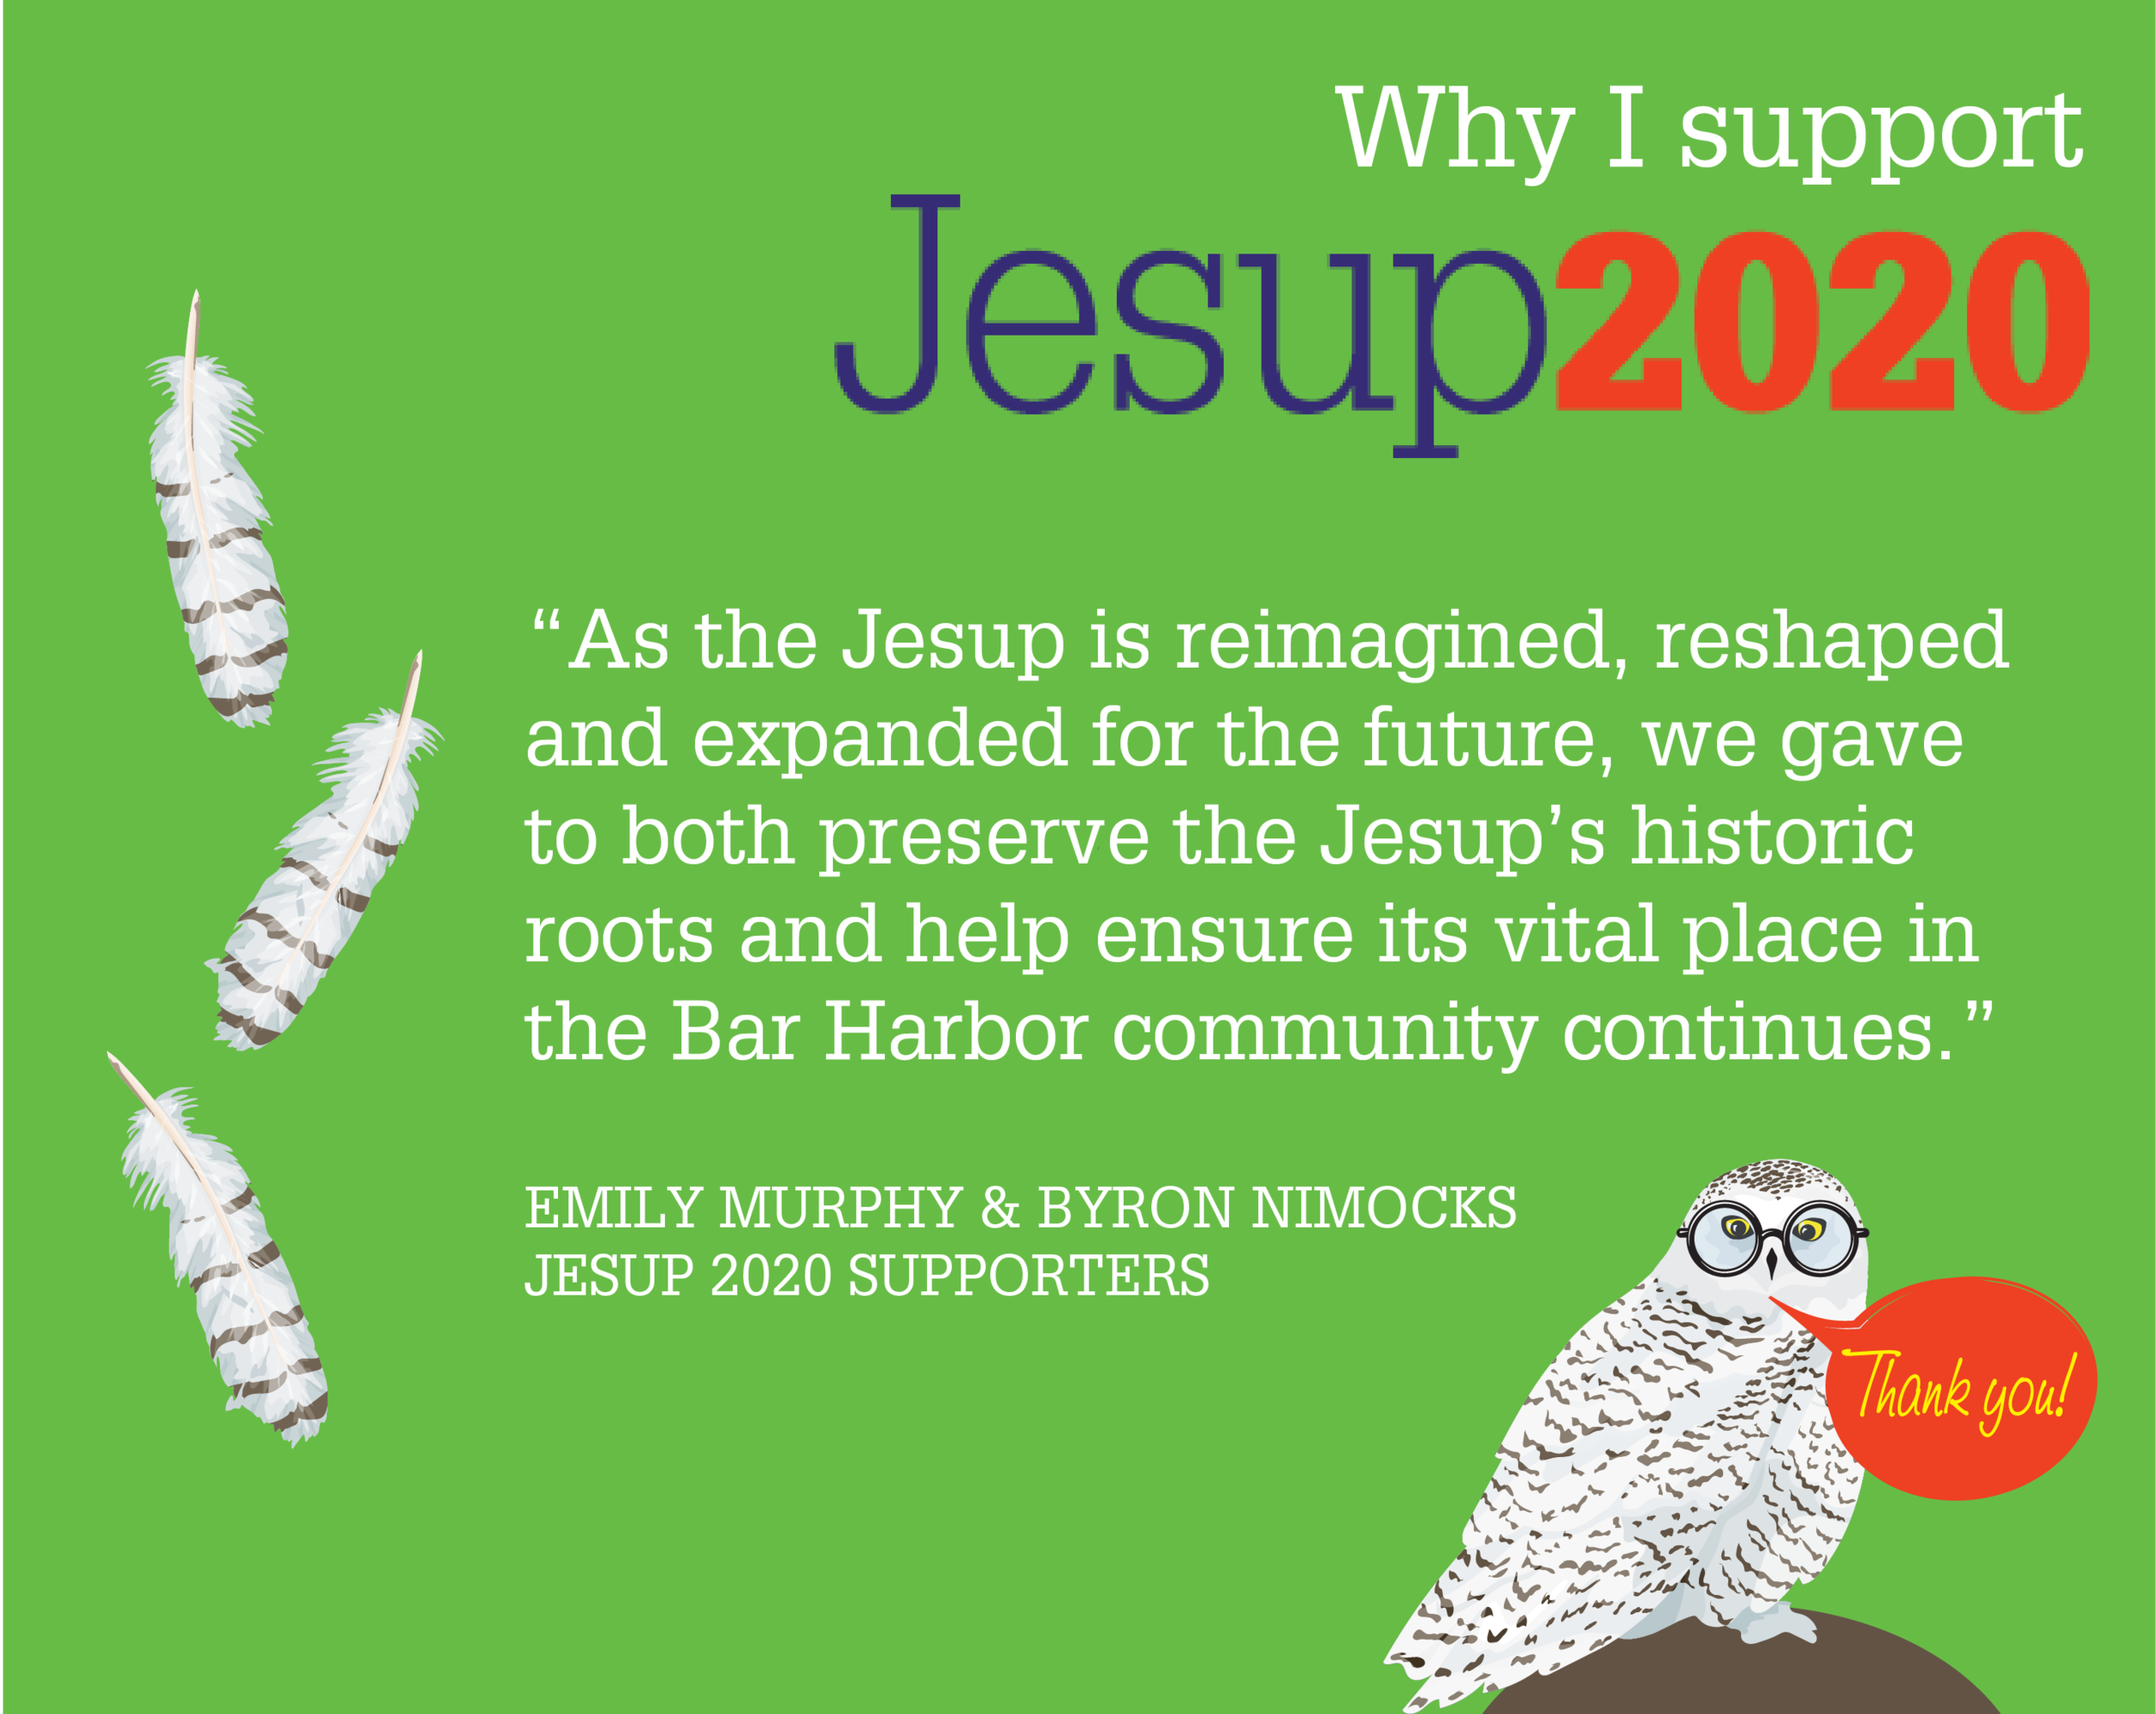 Why I Support Jesup 2020 - Emily Murphy & Byron Nimocks-01.png